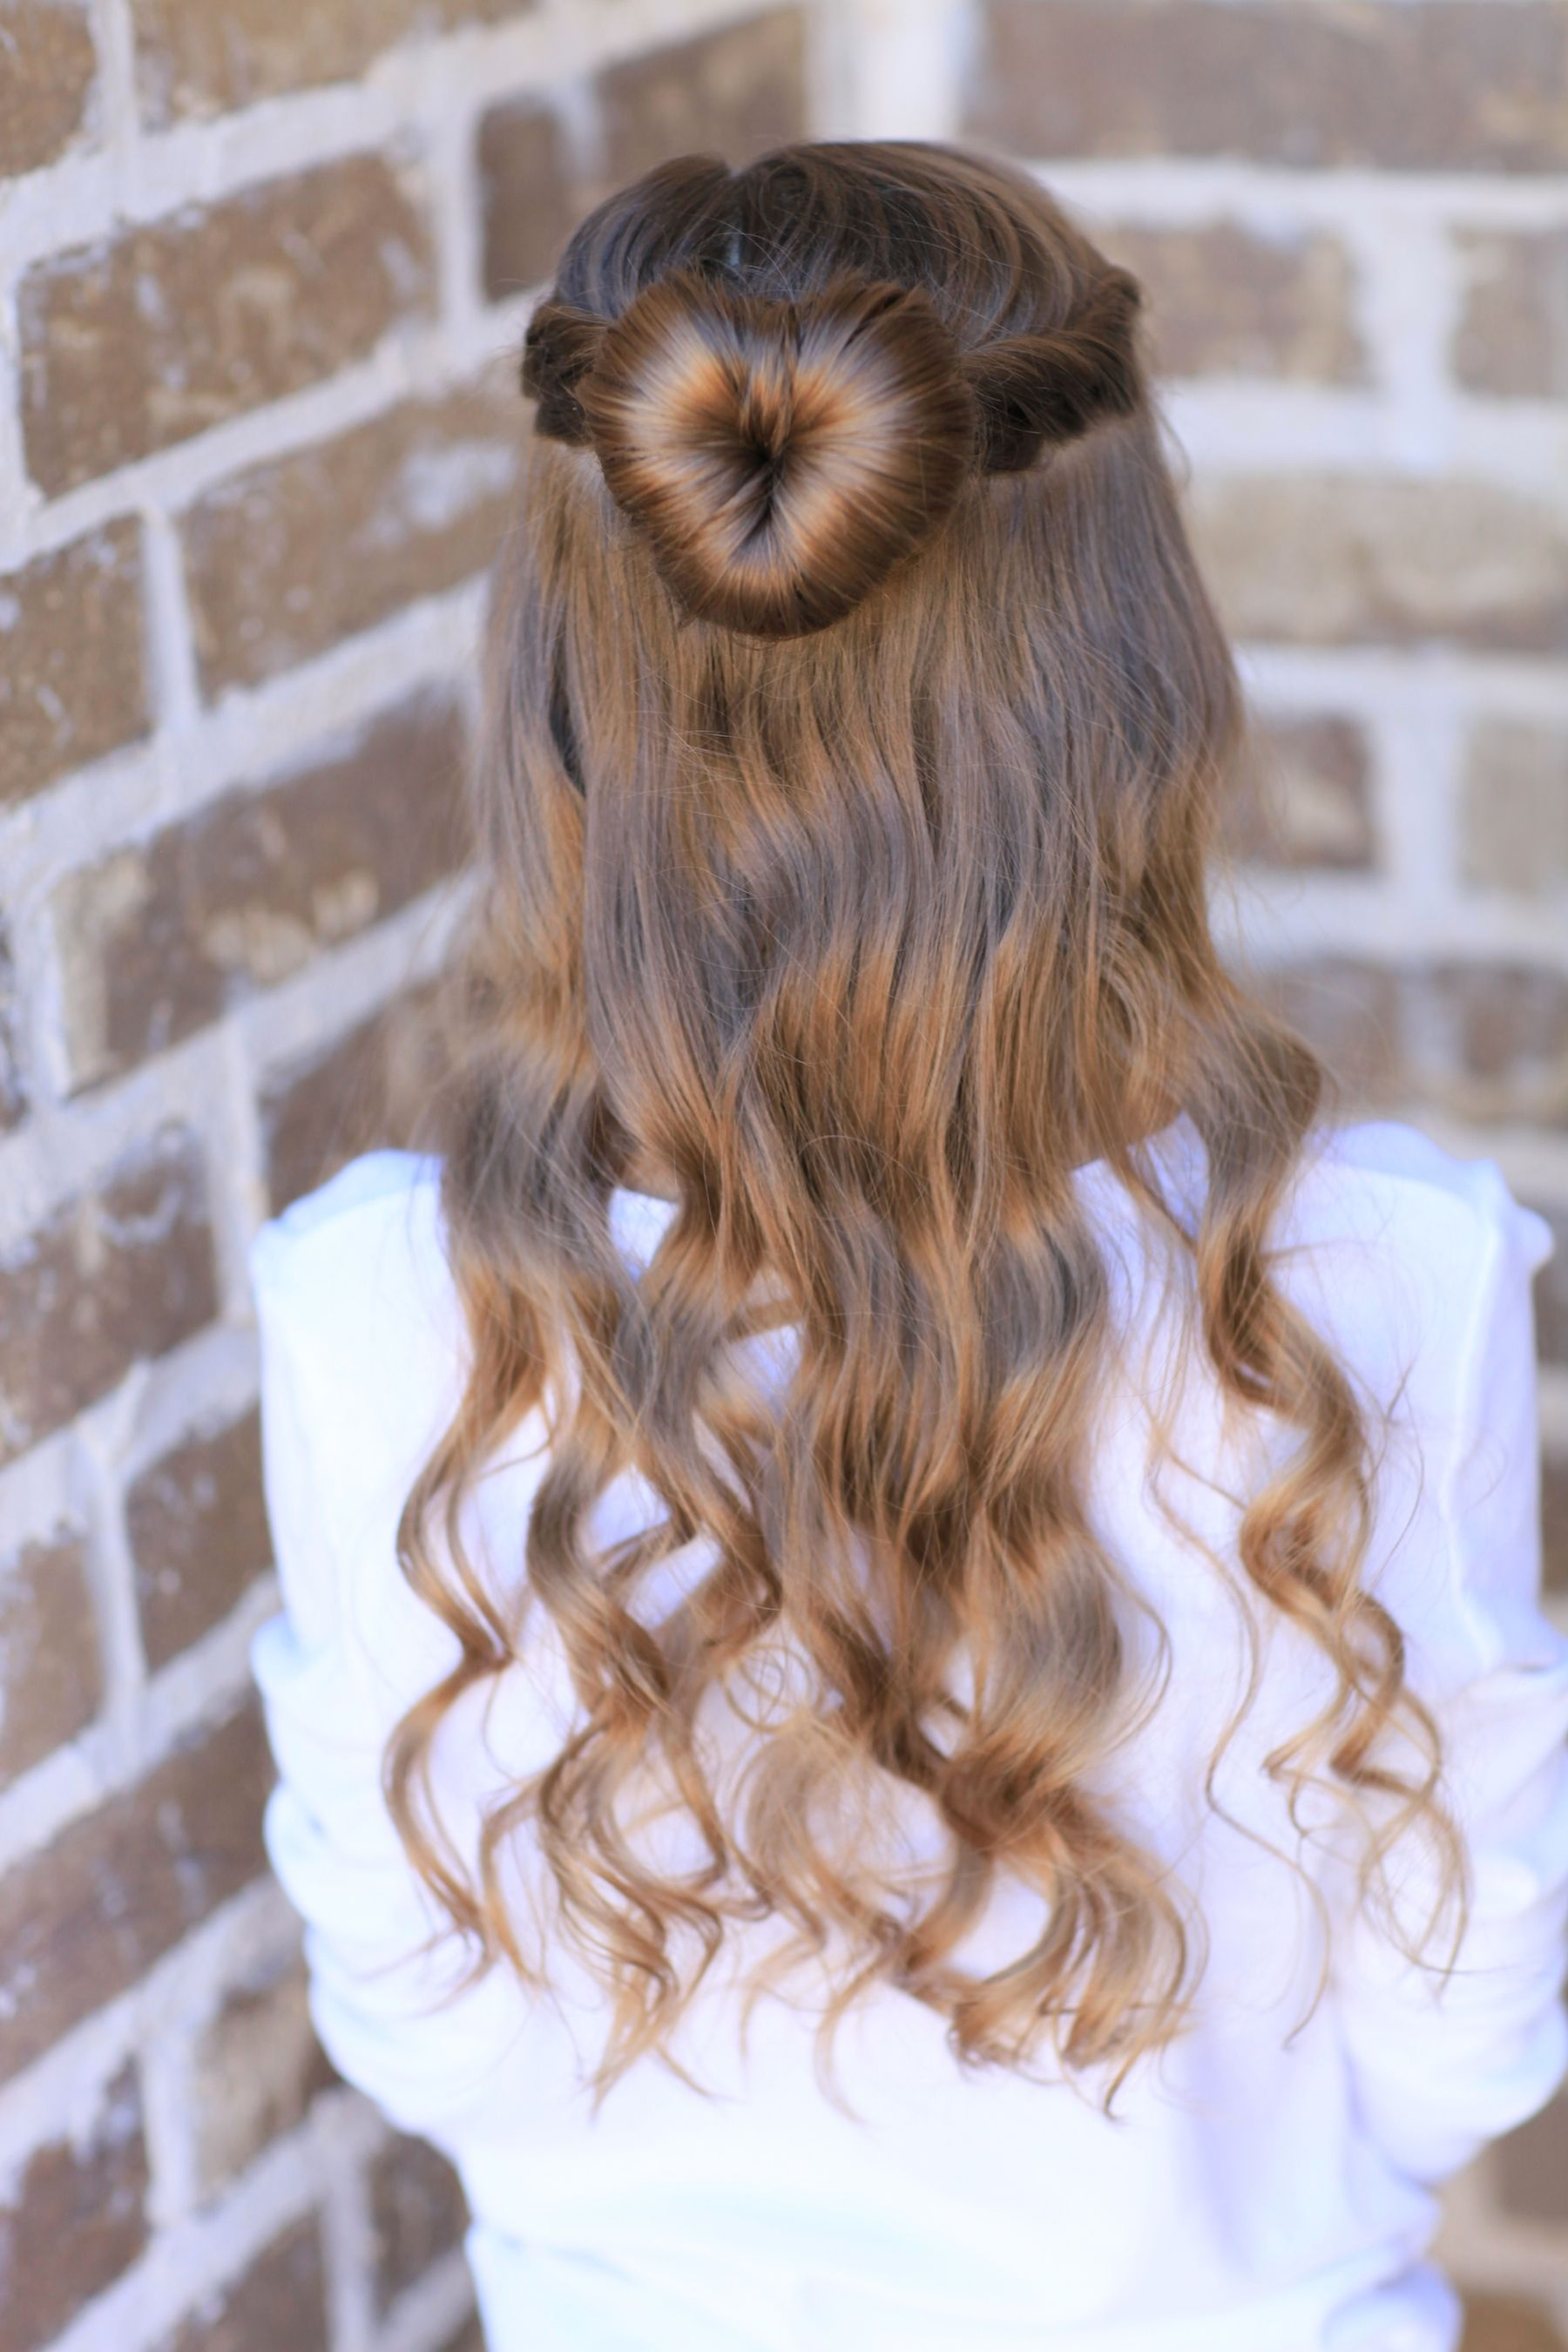 20 cute hairstyles for girls and women | hair style, hair makeup